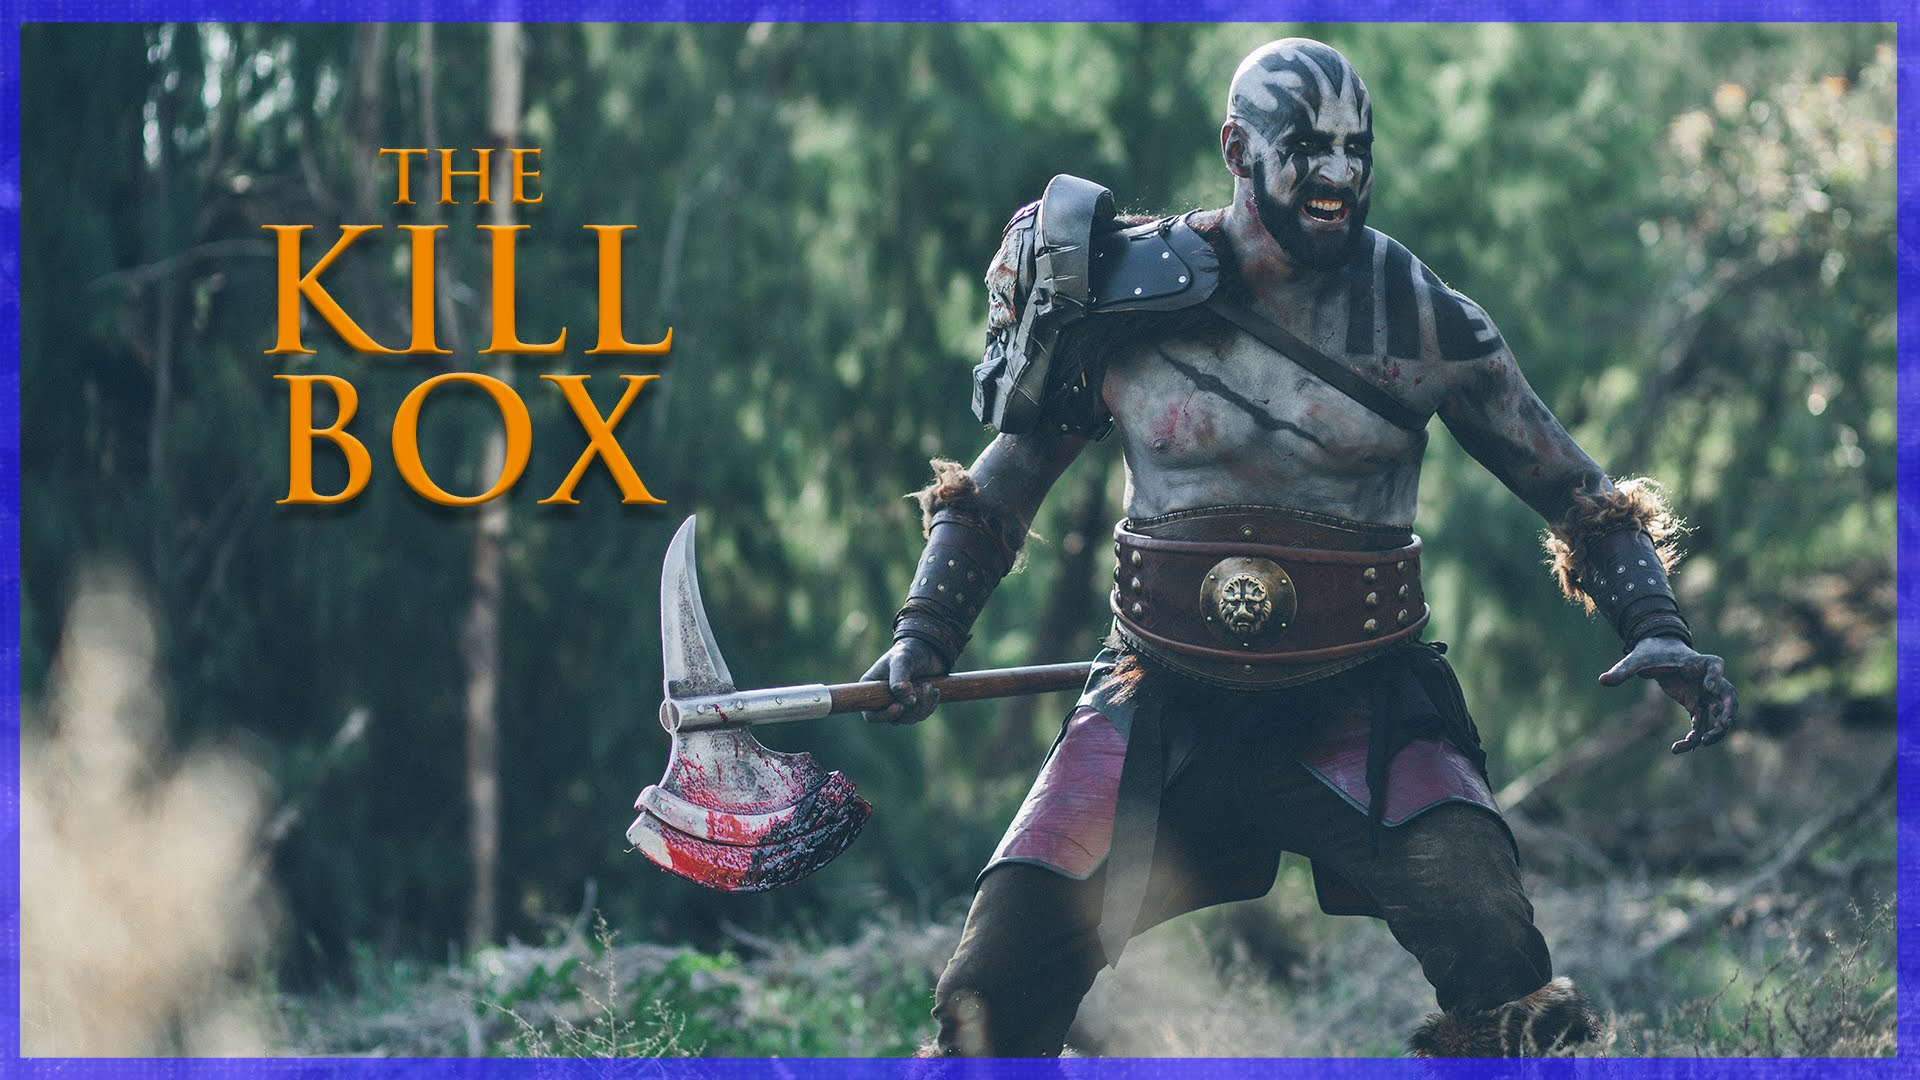 The Kill Box | Critical Role Wiki | FANDOM powered by Wikia